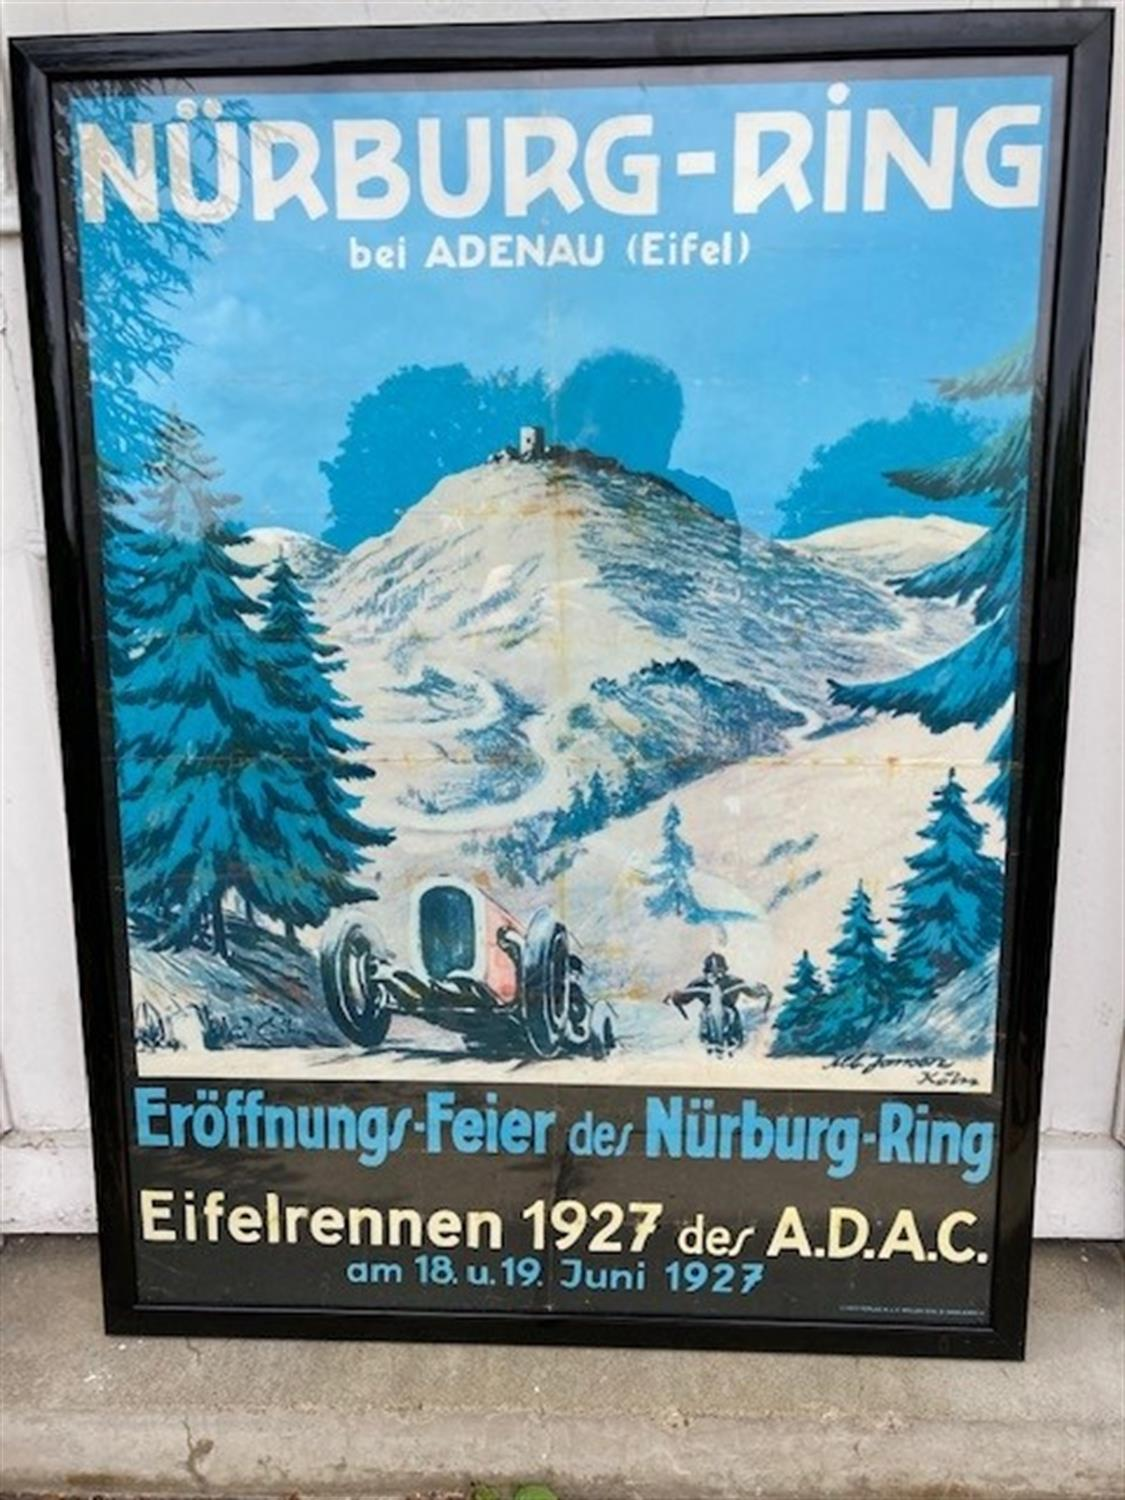 Charismatic Poster Depicting the Nurburgring in 1927